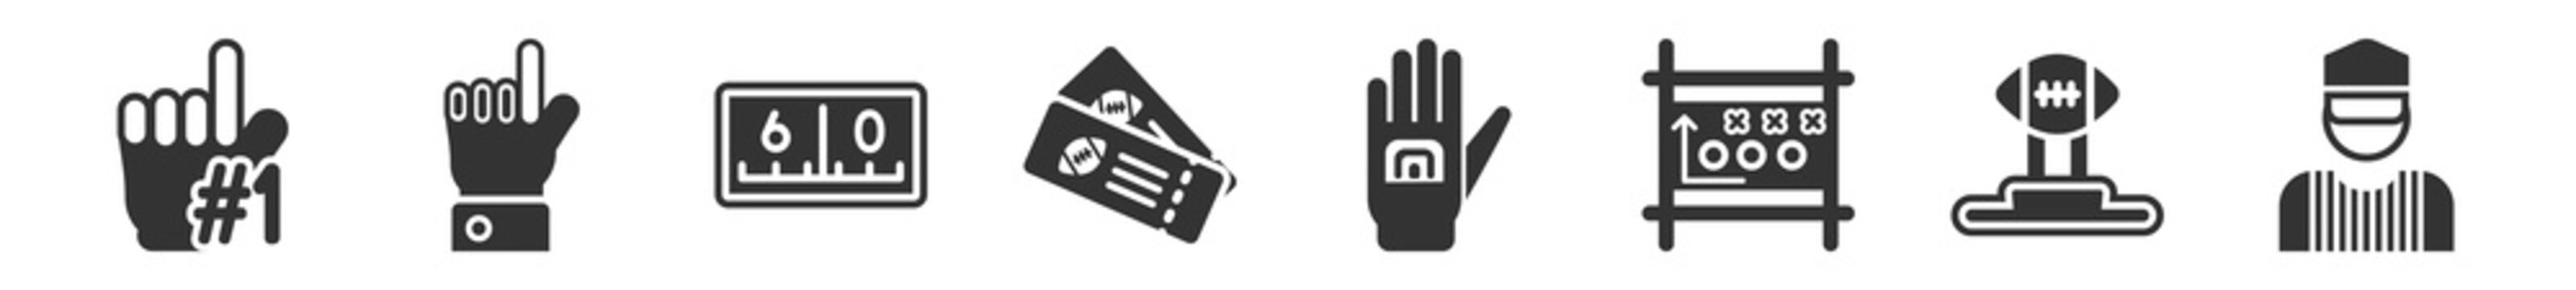 filled set of american football icons. glyph vector icons such as foam finger, hand with extended pointing finger, yard marking, american football ticket, glove for, referee. vector illustration.